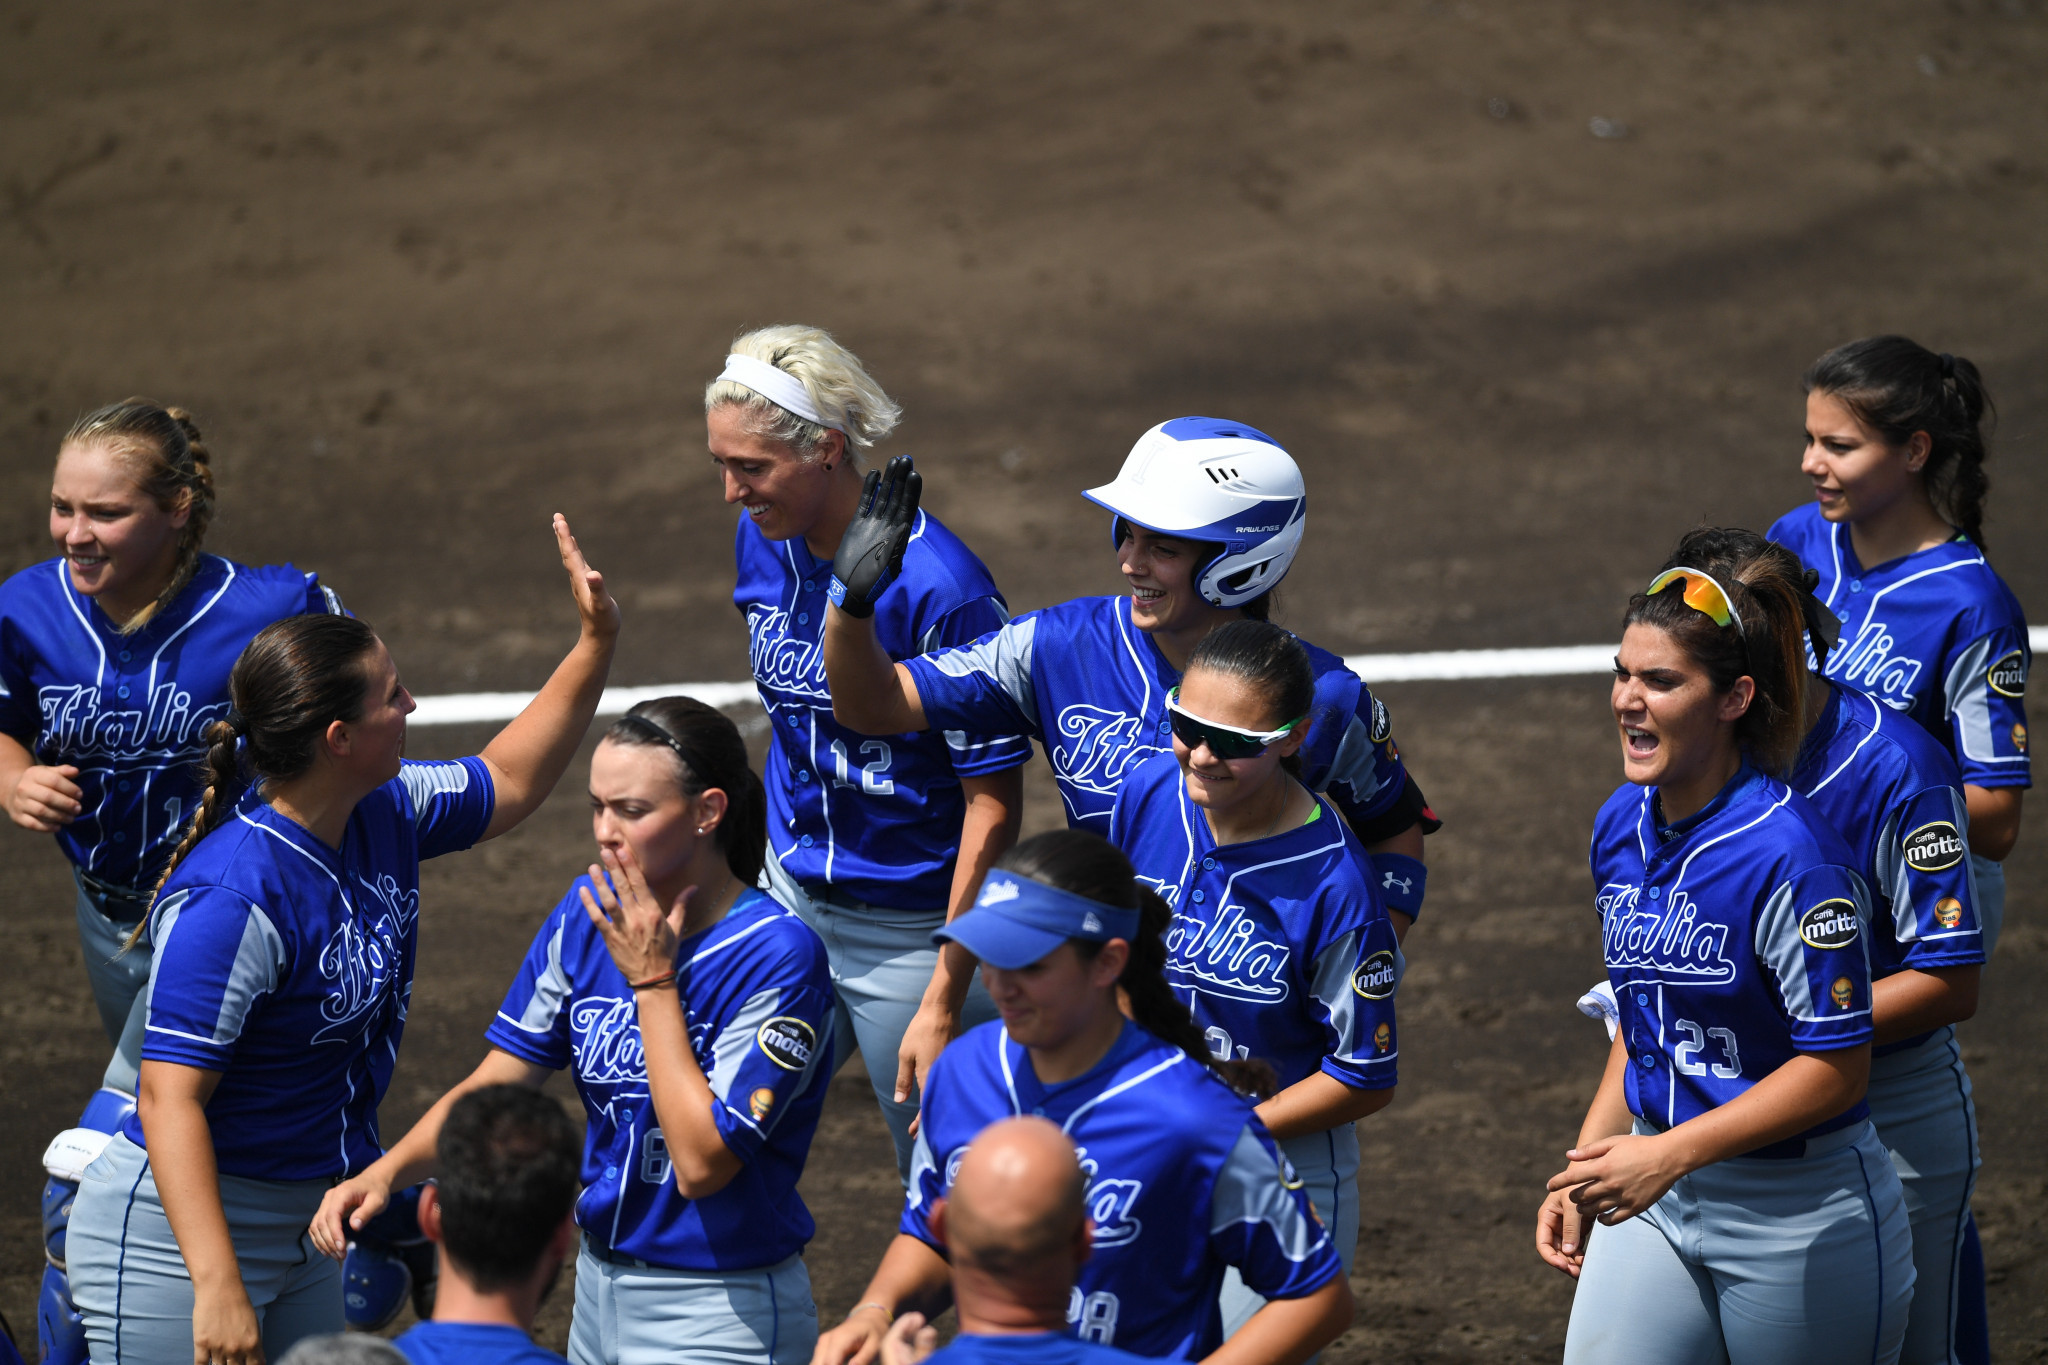 Pizzolini to lead Italian softball team at Tokyo 2020 after head coach death